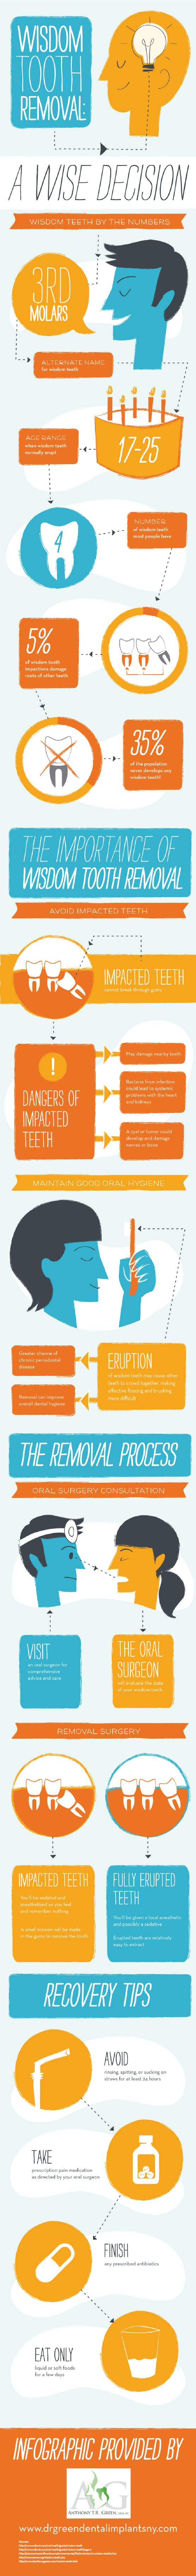 wisdom-tooth-removal-a-wise-move-infographic